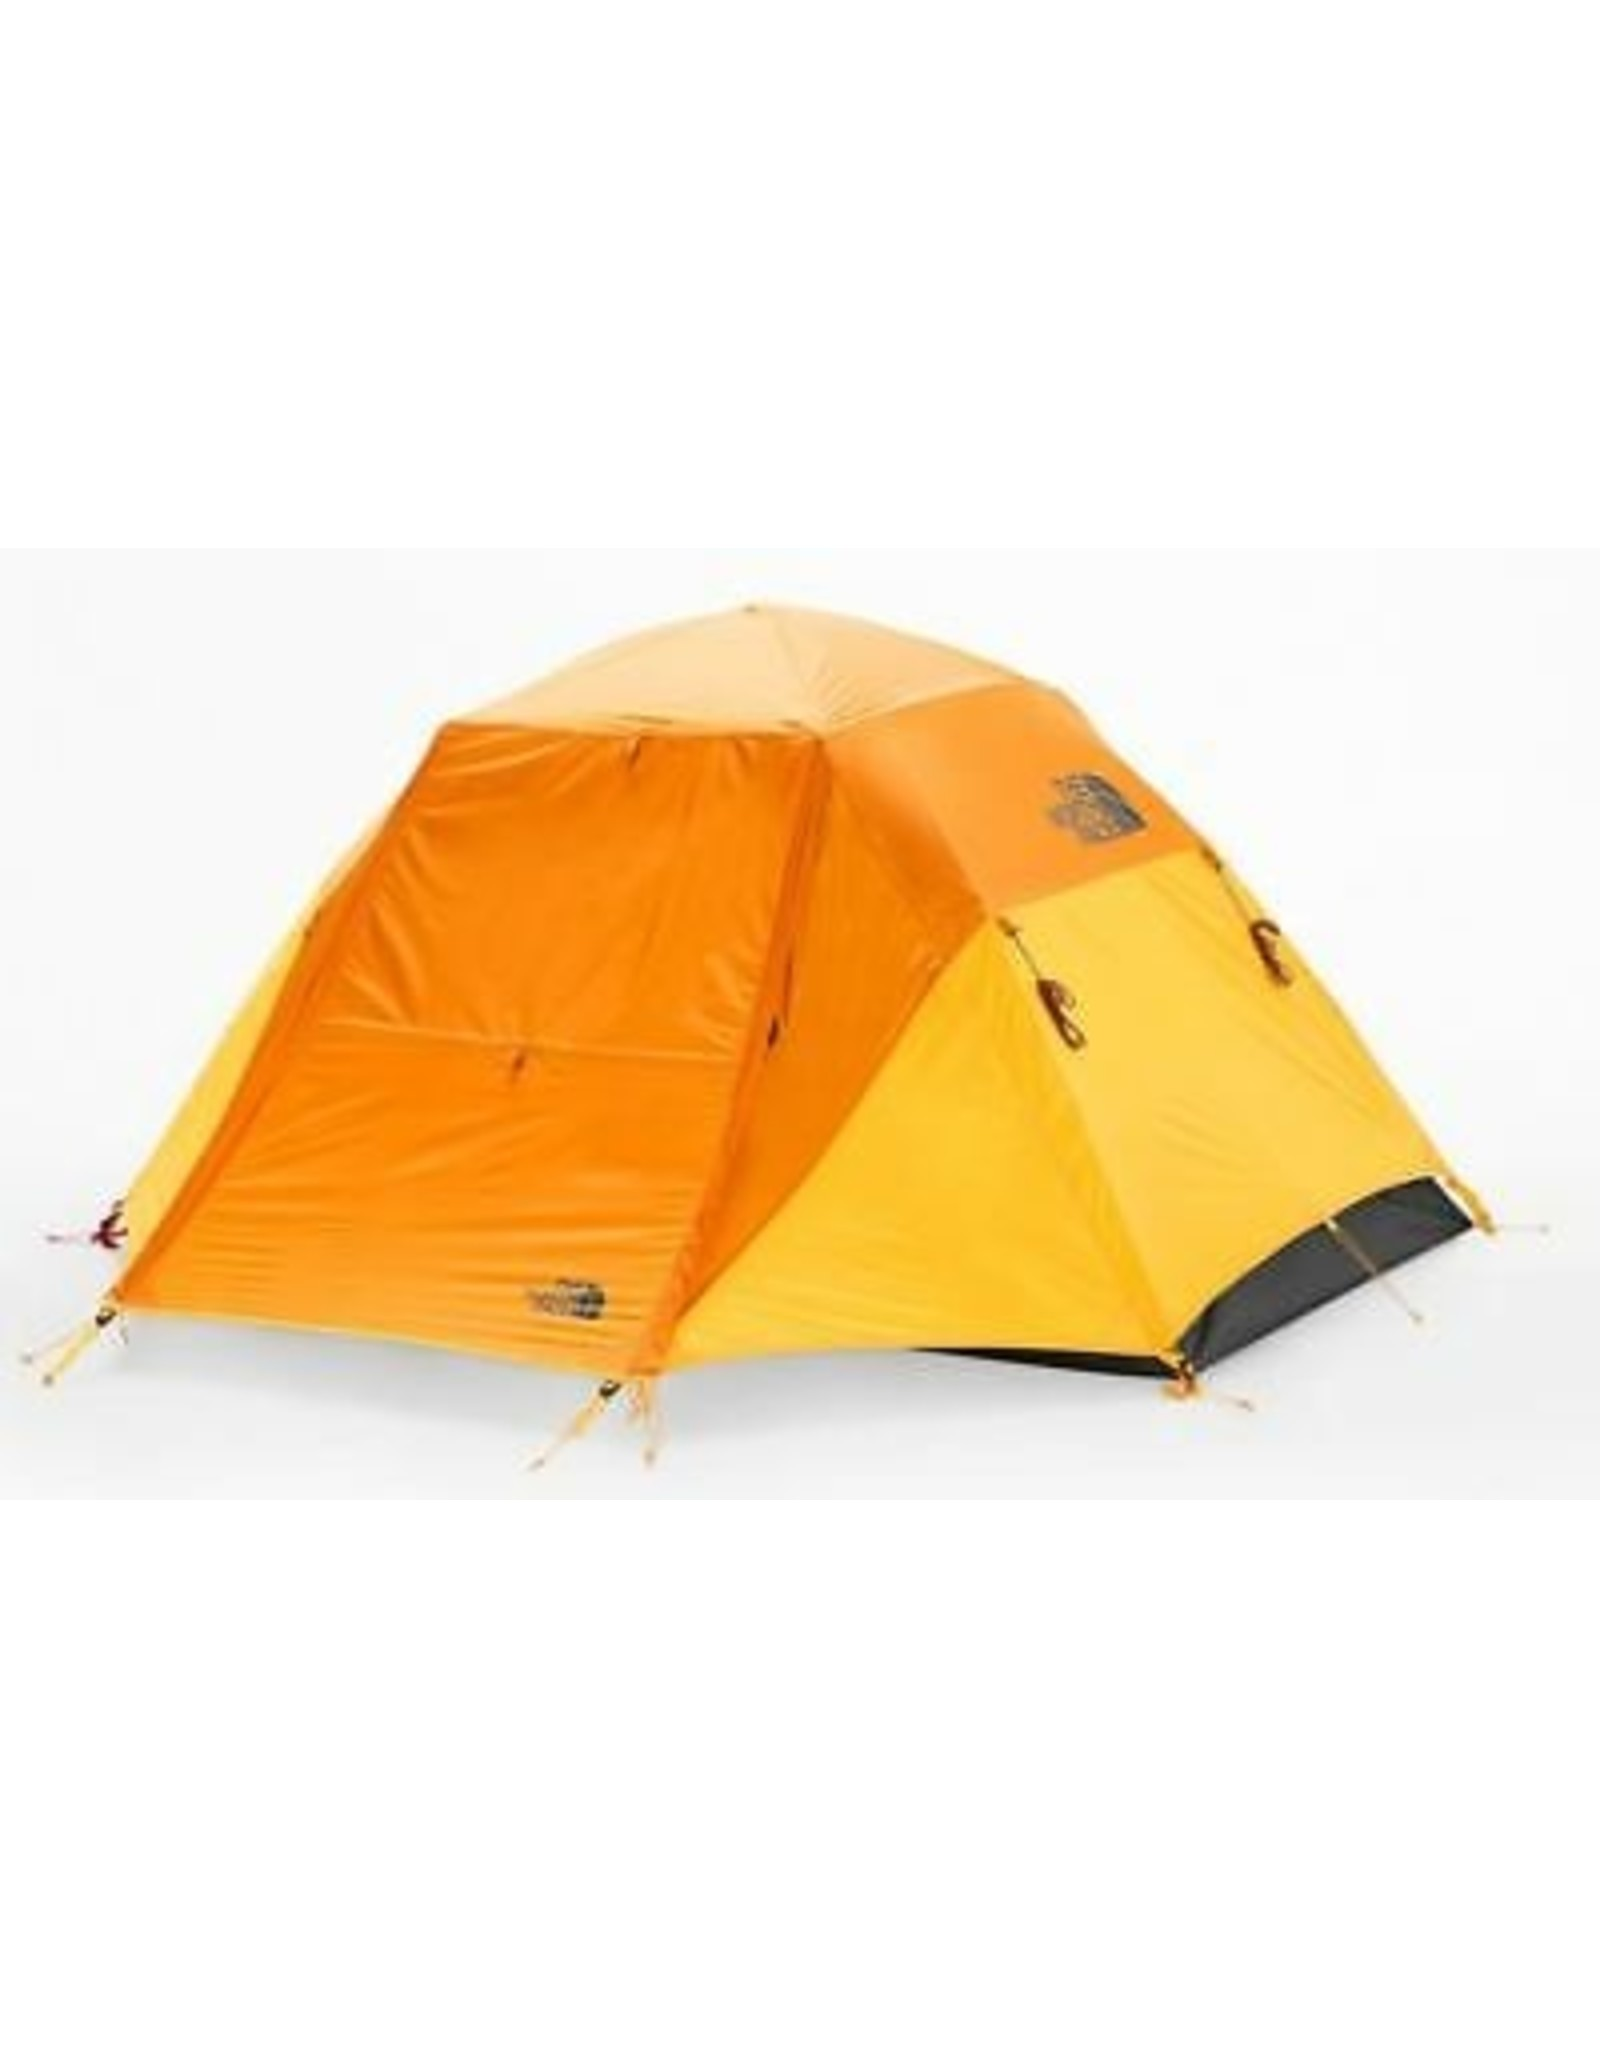 The North Face Stormbreak 3